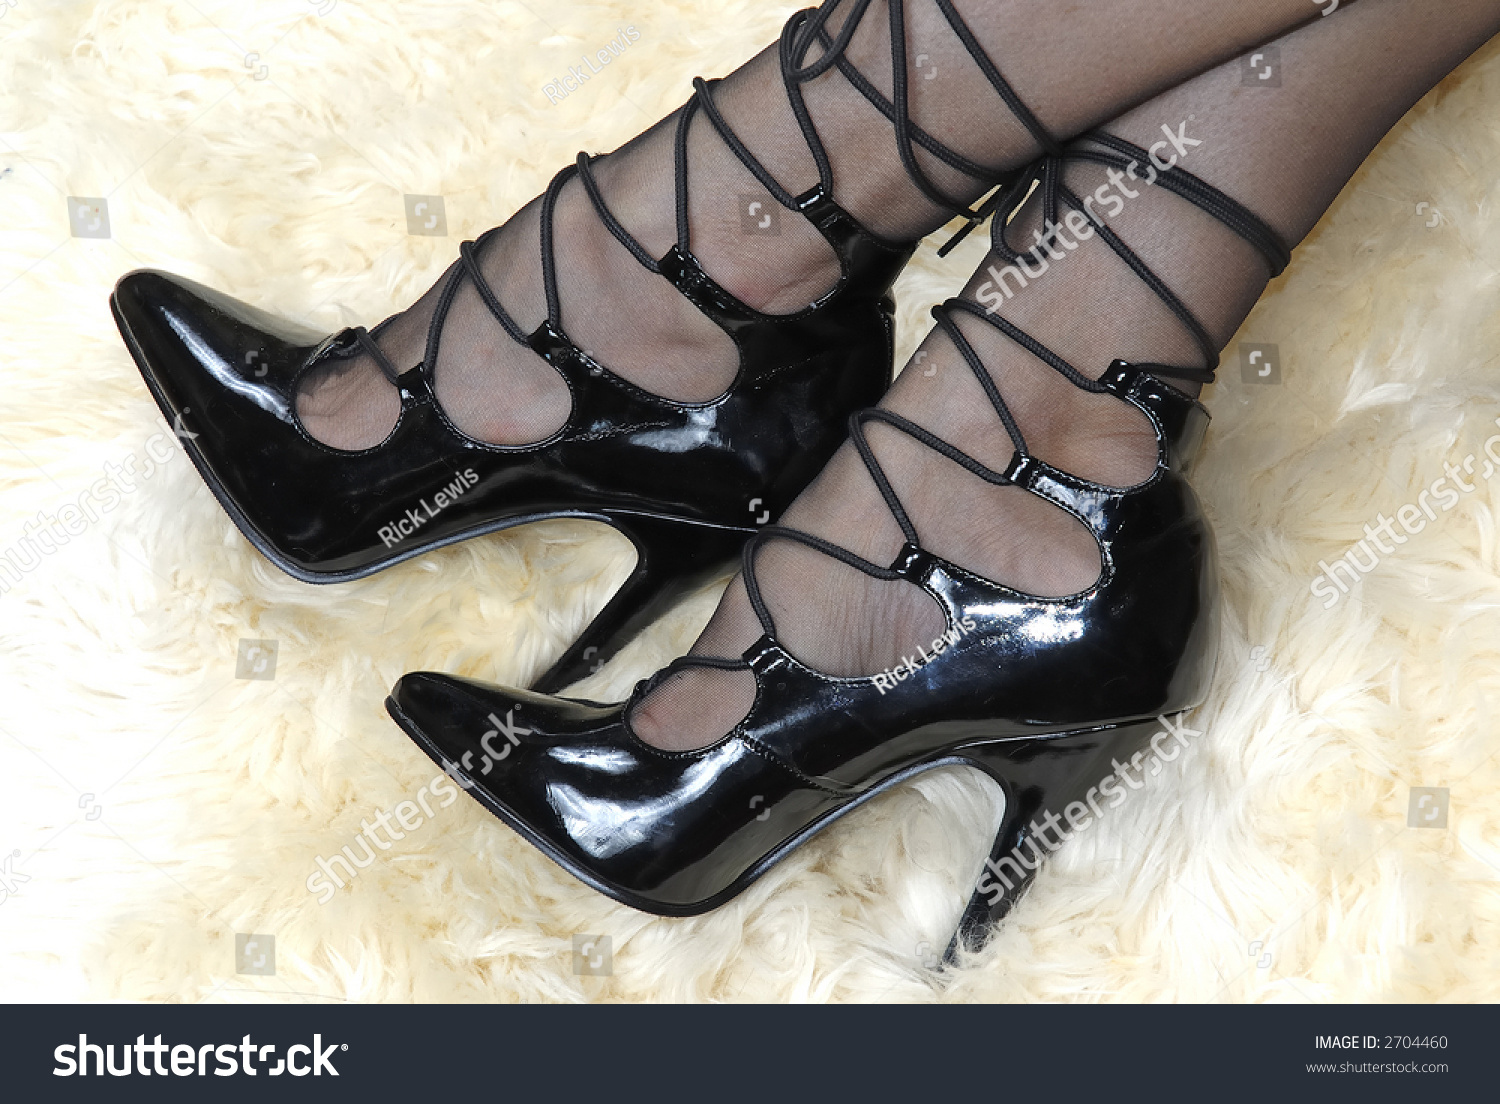 Share black high heels and stockings right! seems